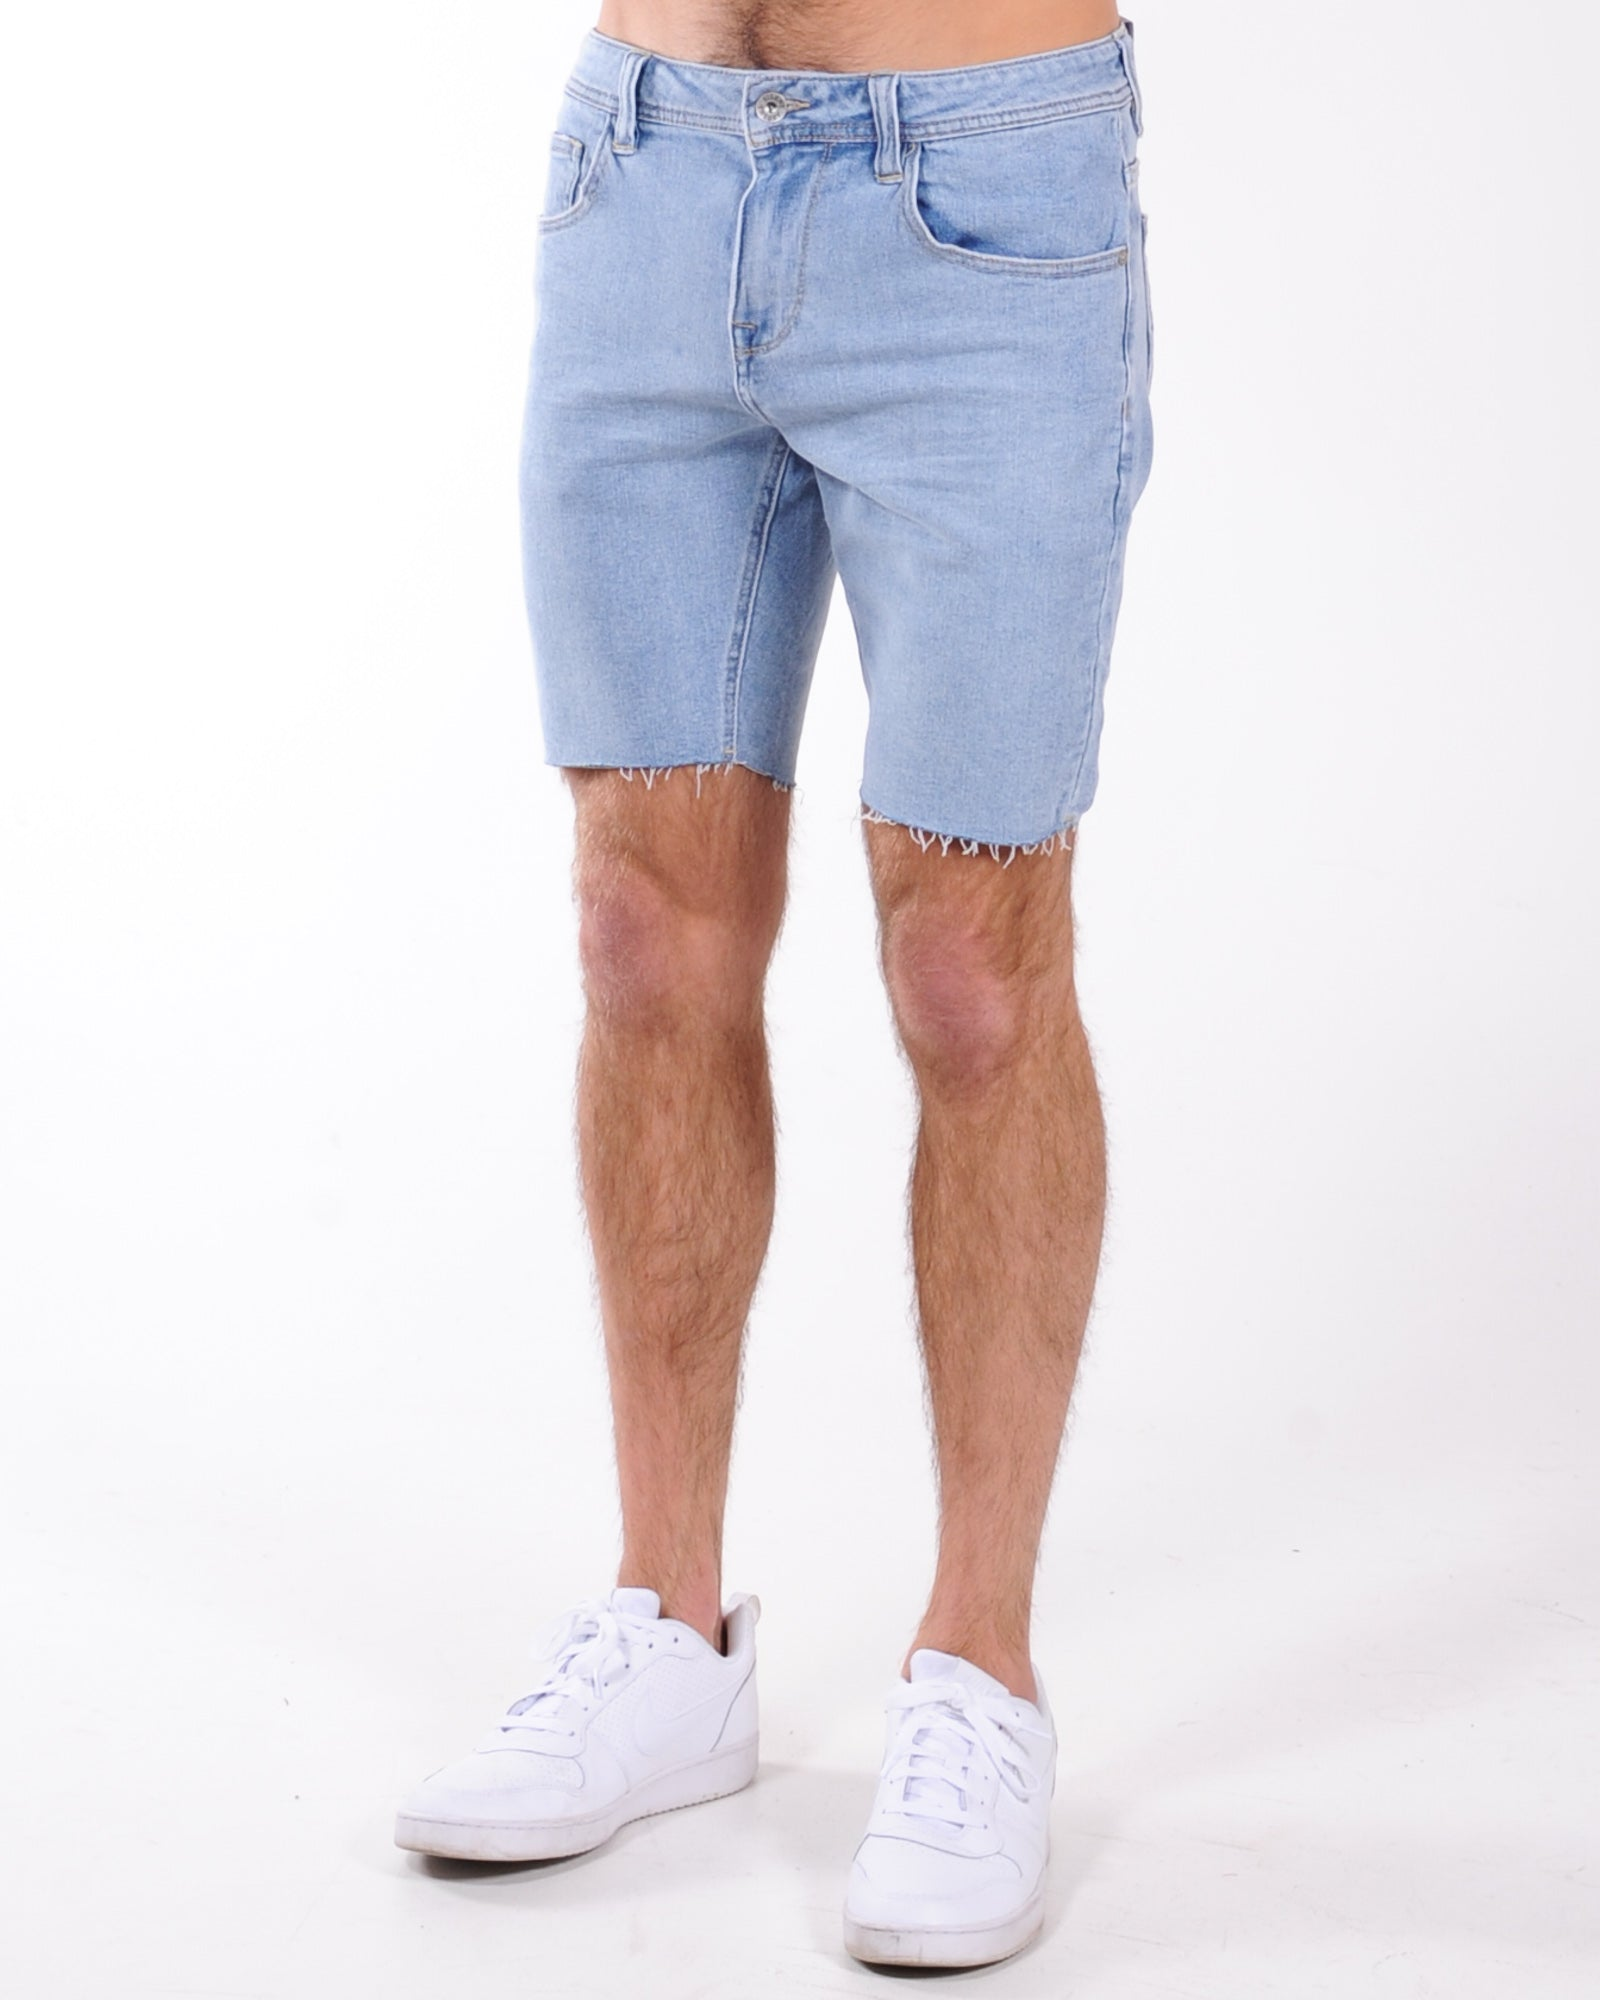 Silent Theory Shadow Raw Denim Short - Light Blue